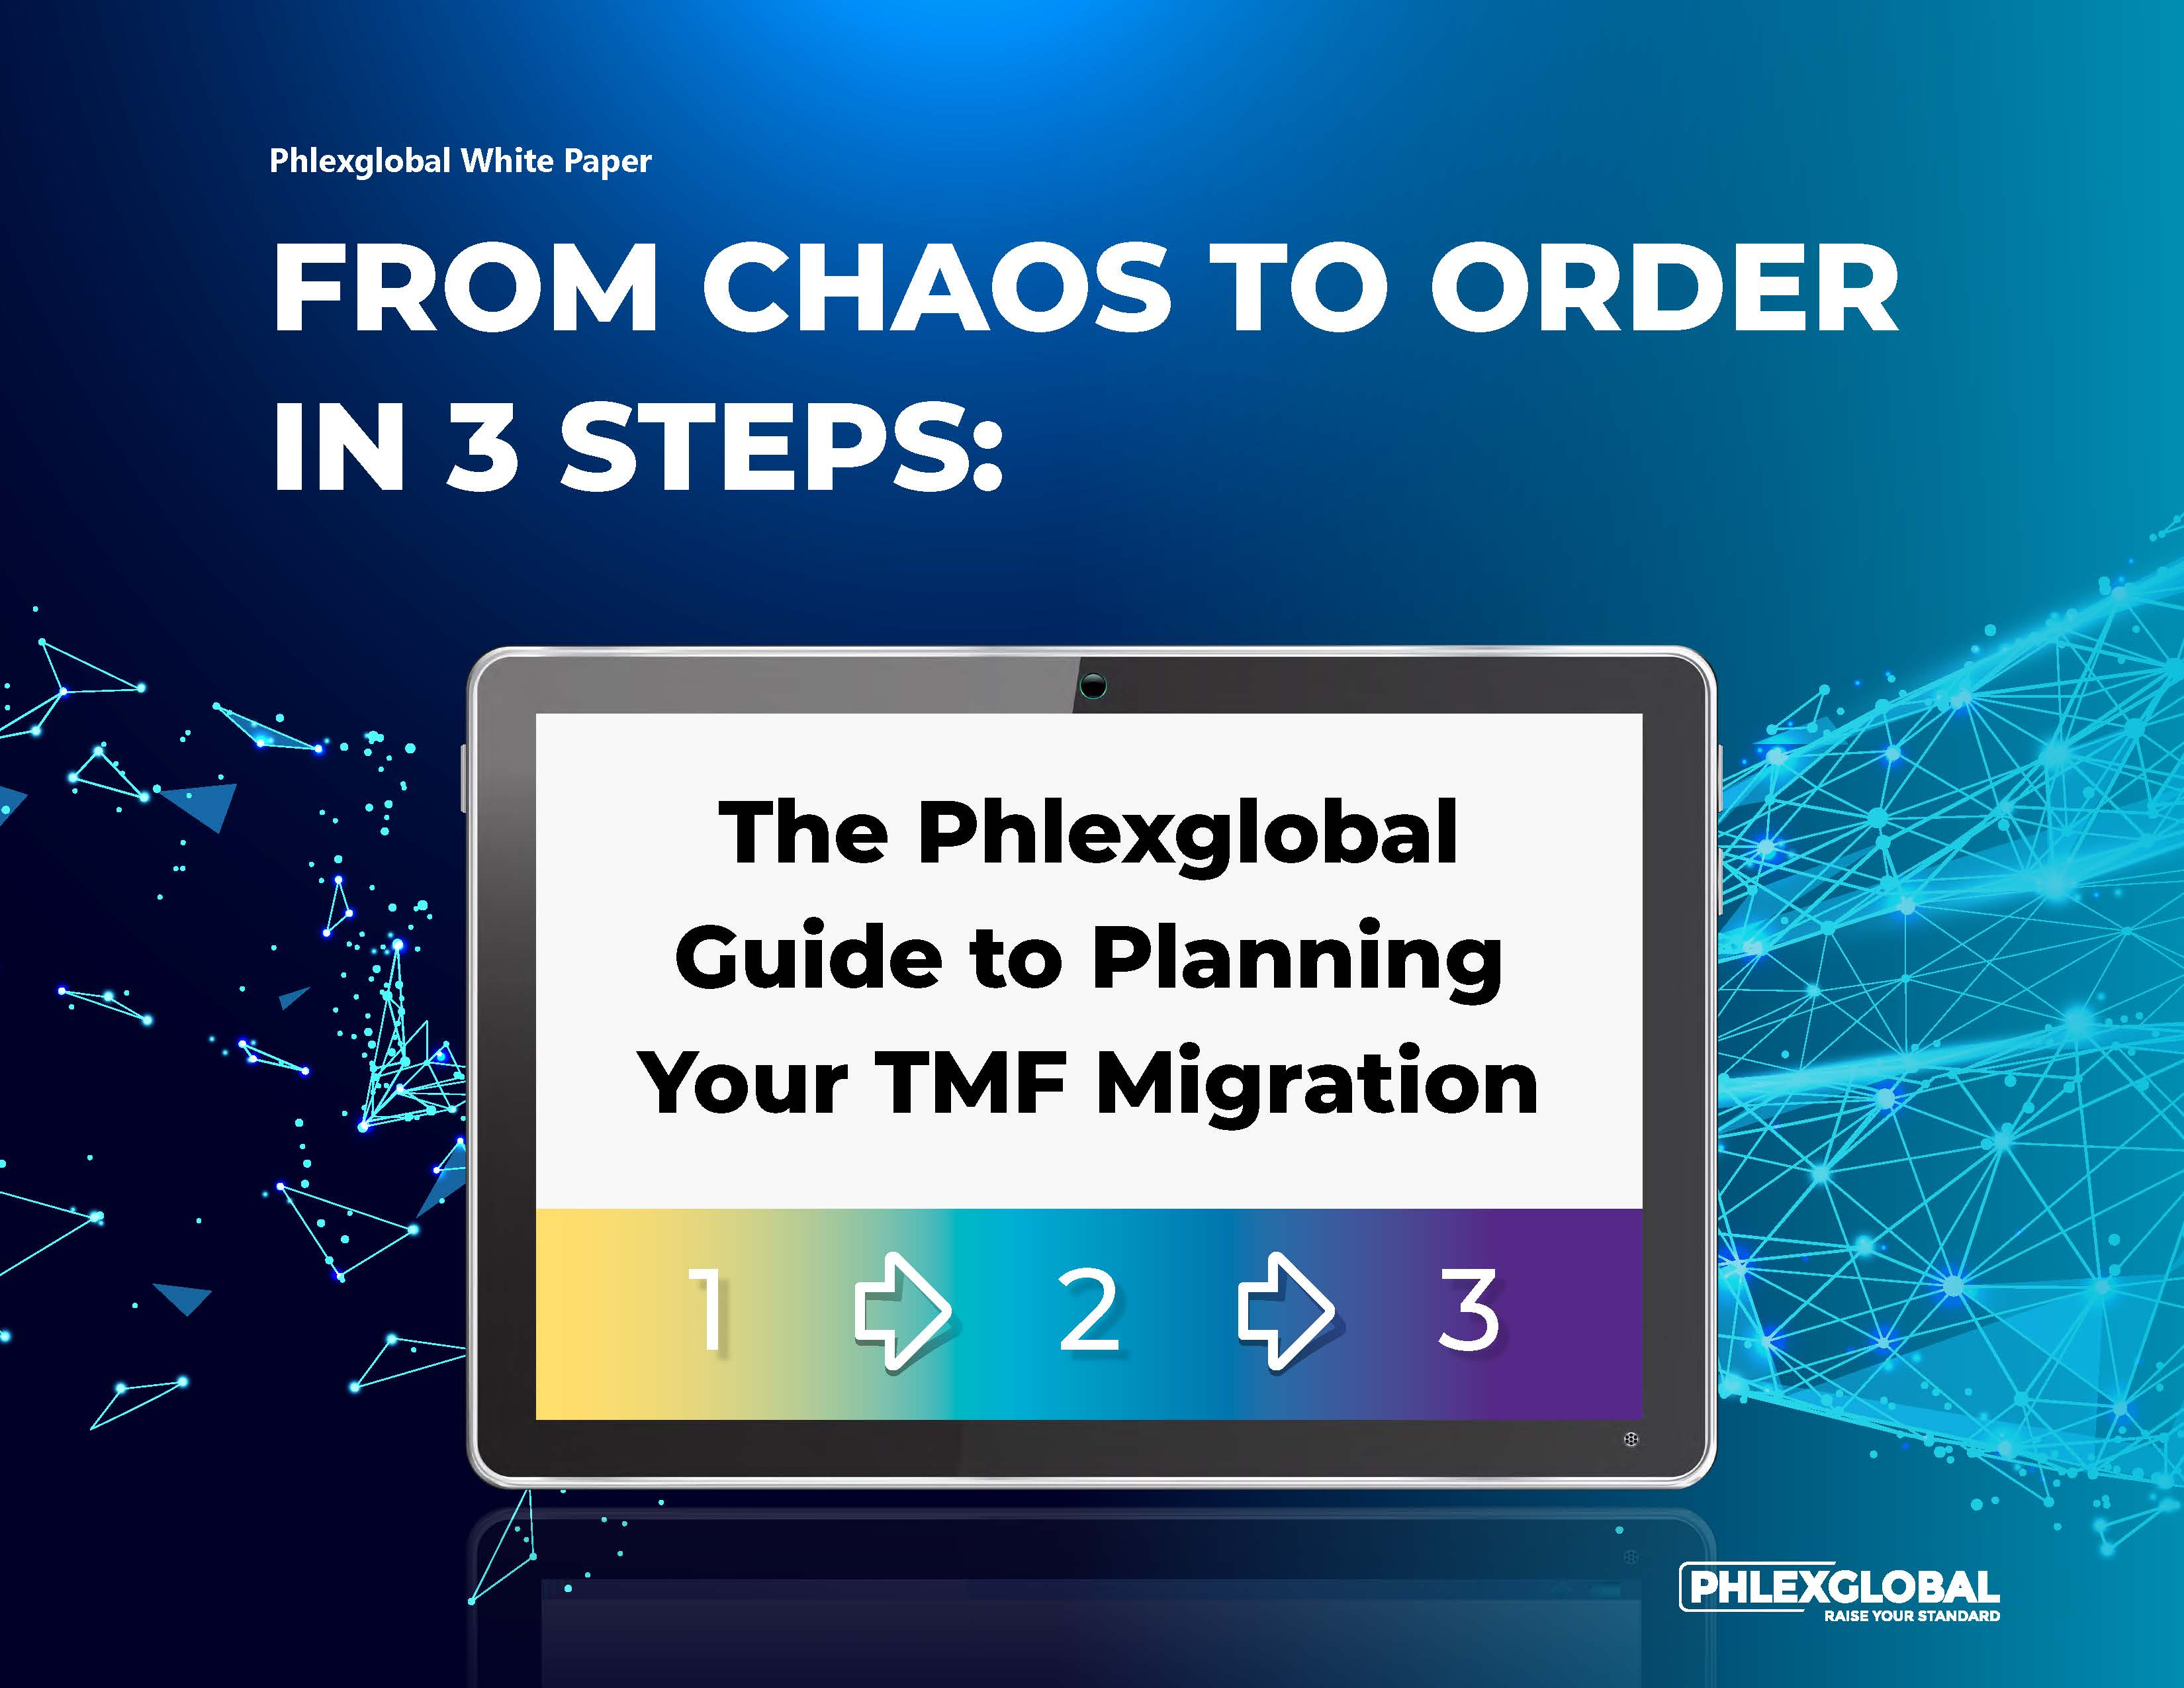 From Chaos to Order in 3 Steps - Phlexglobal Guide to Planning TMF Migration_Page_1